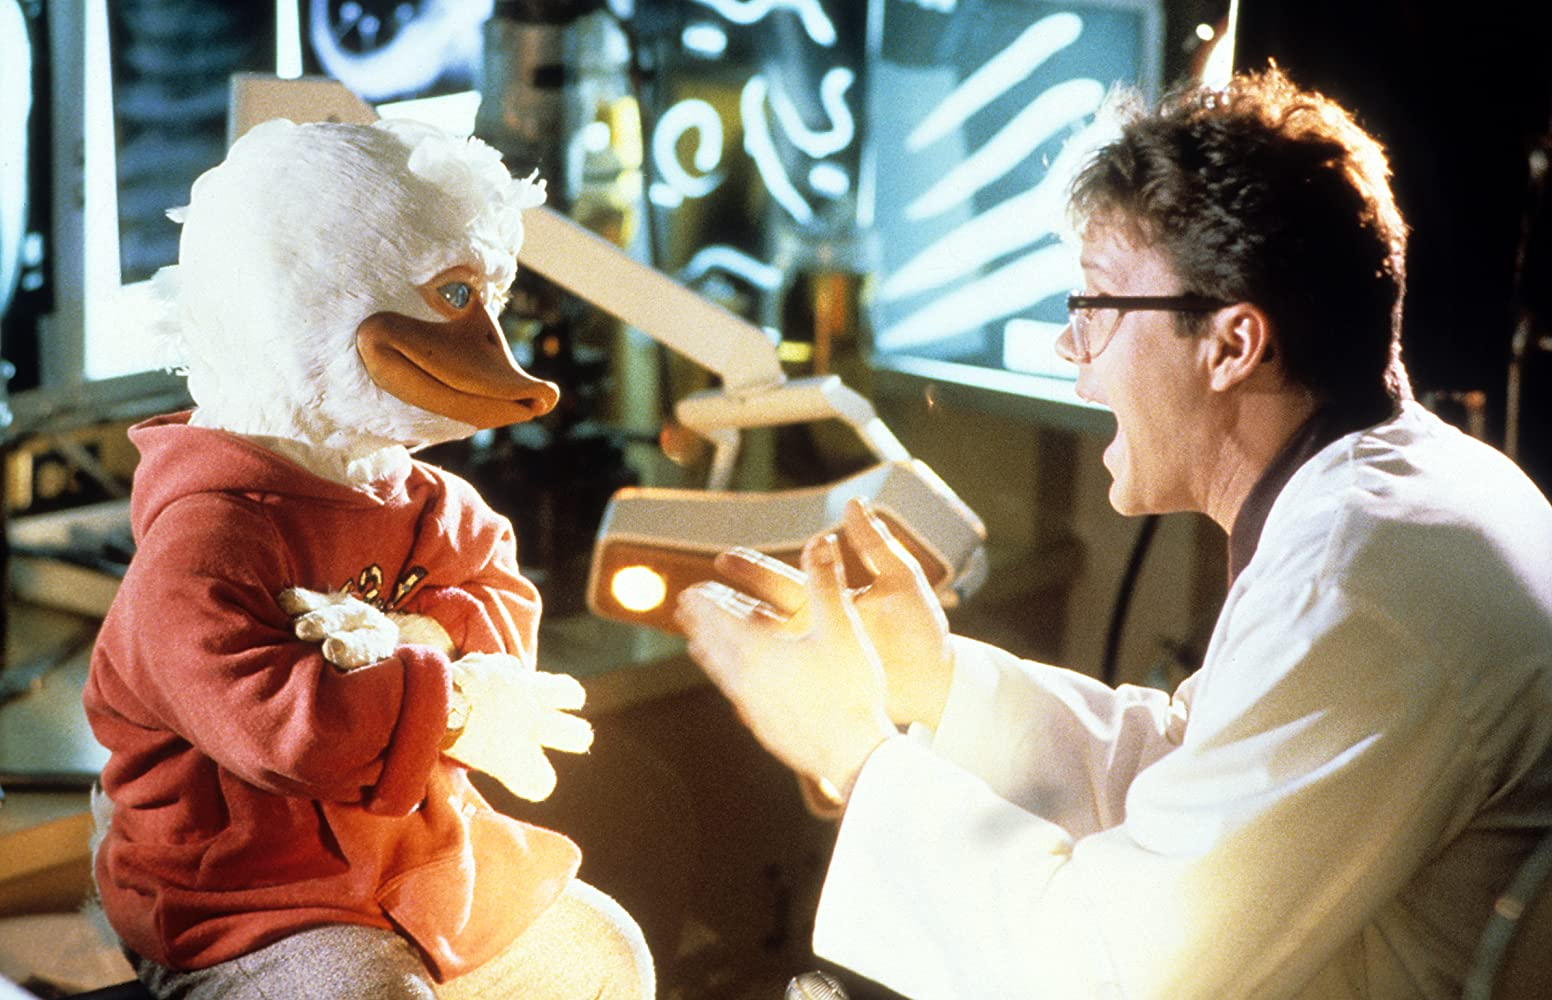 Tim Robbins in Howard the Duck (1986)